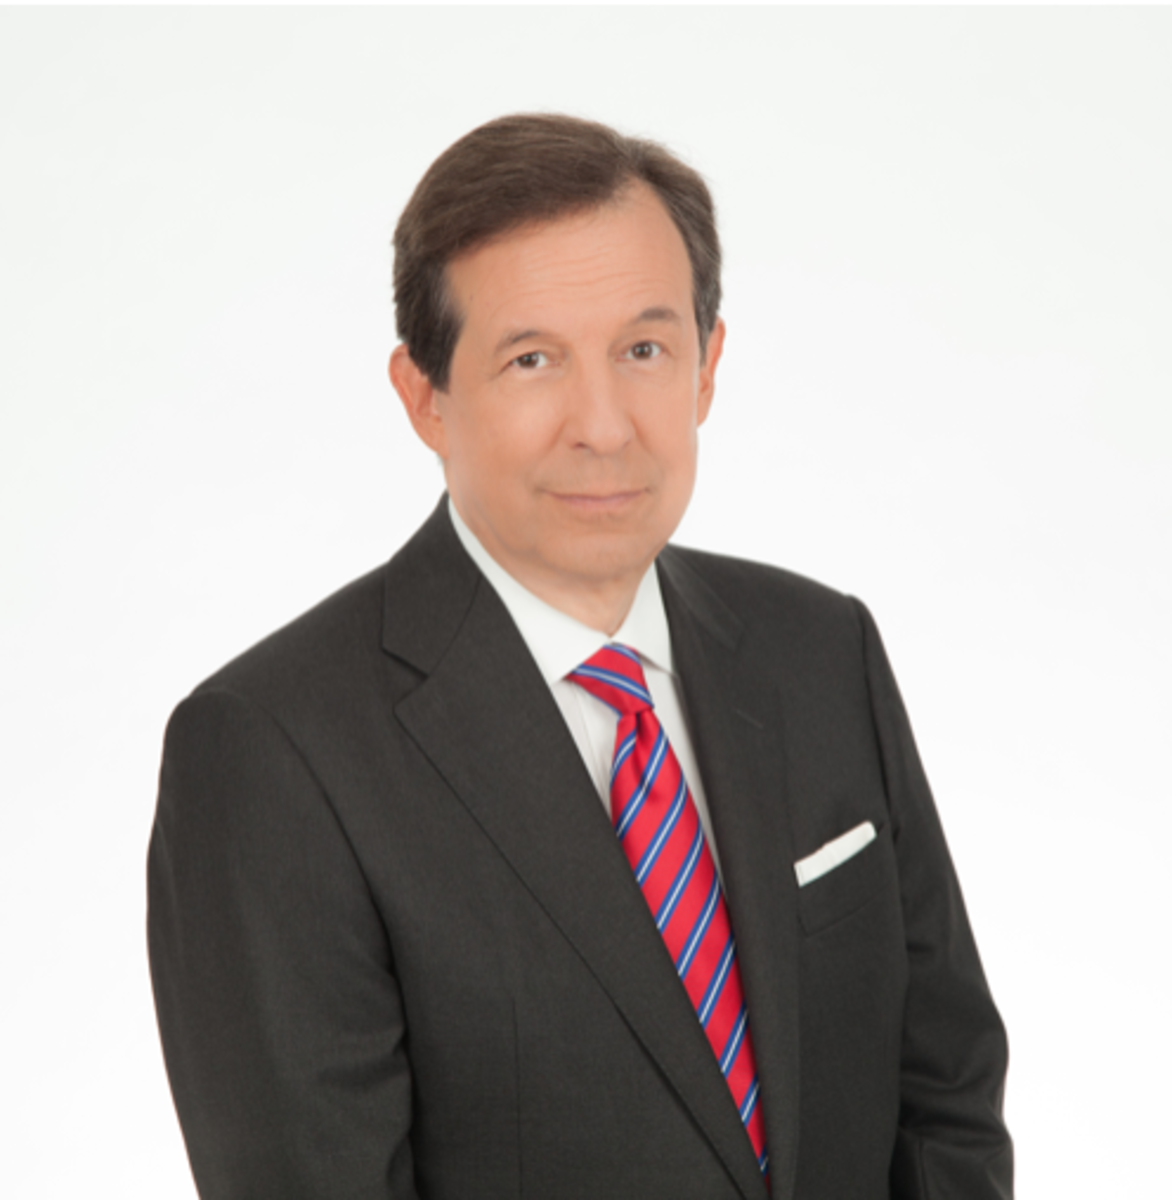 Fox News Sunday host Chris Wallace